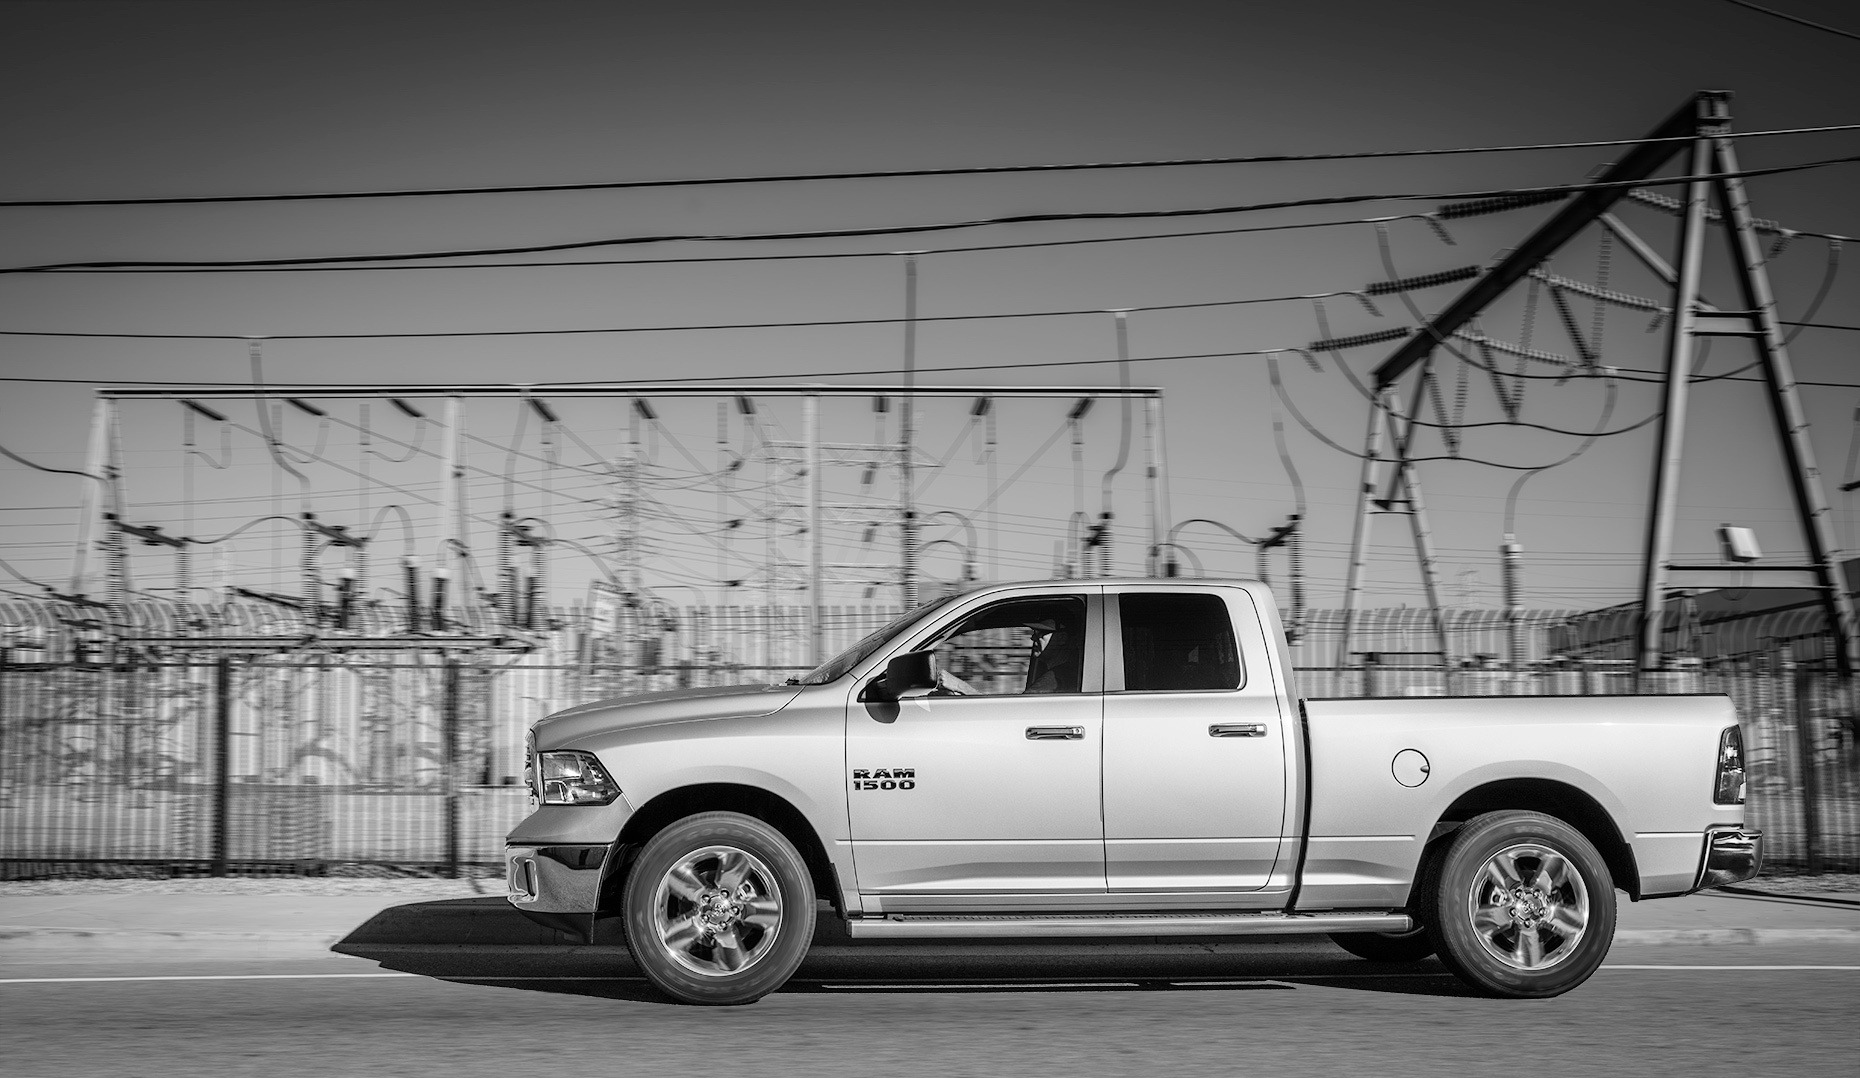 Christopher Nelson Photography|Dodge Ram Truck|Silver|6th Street Bridge|DTLA